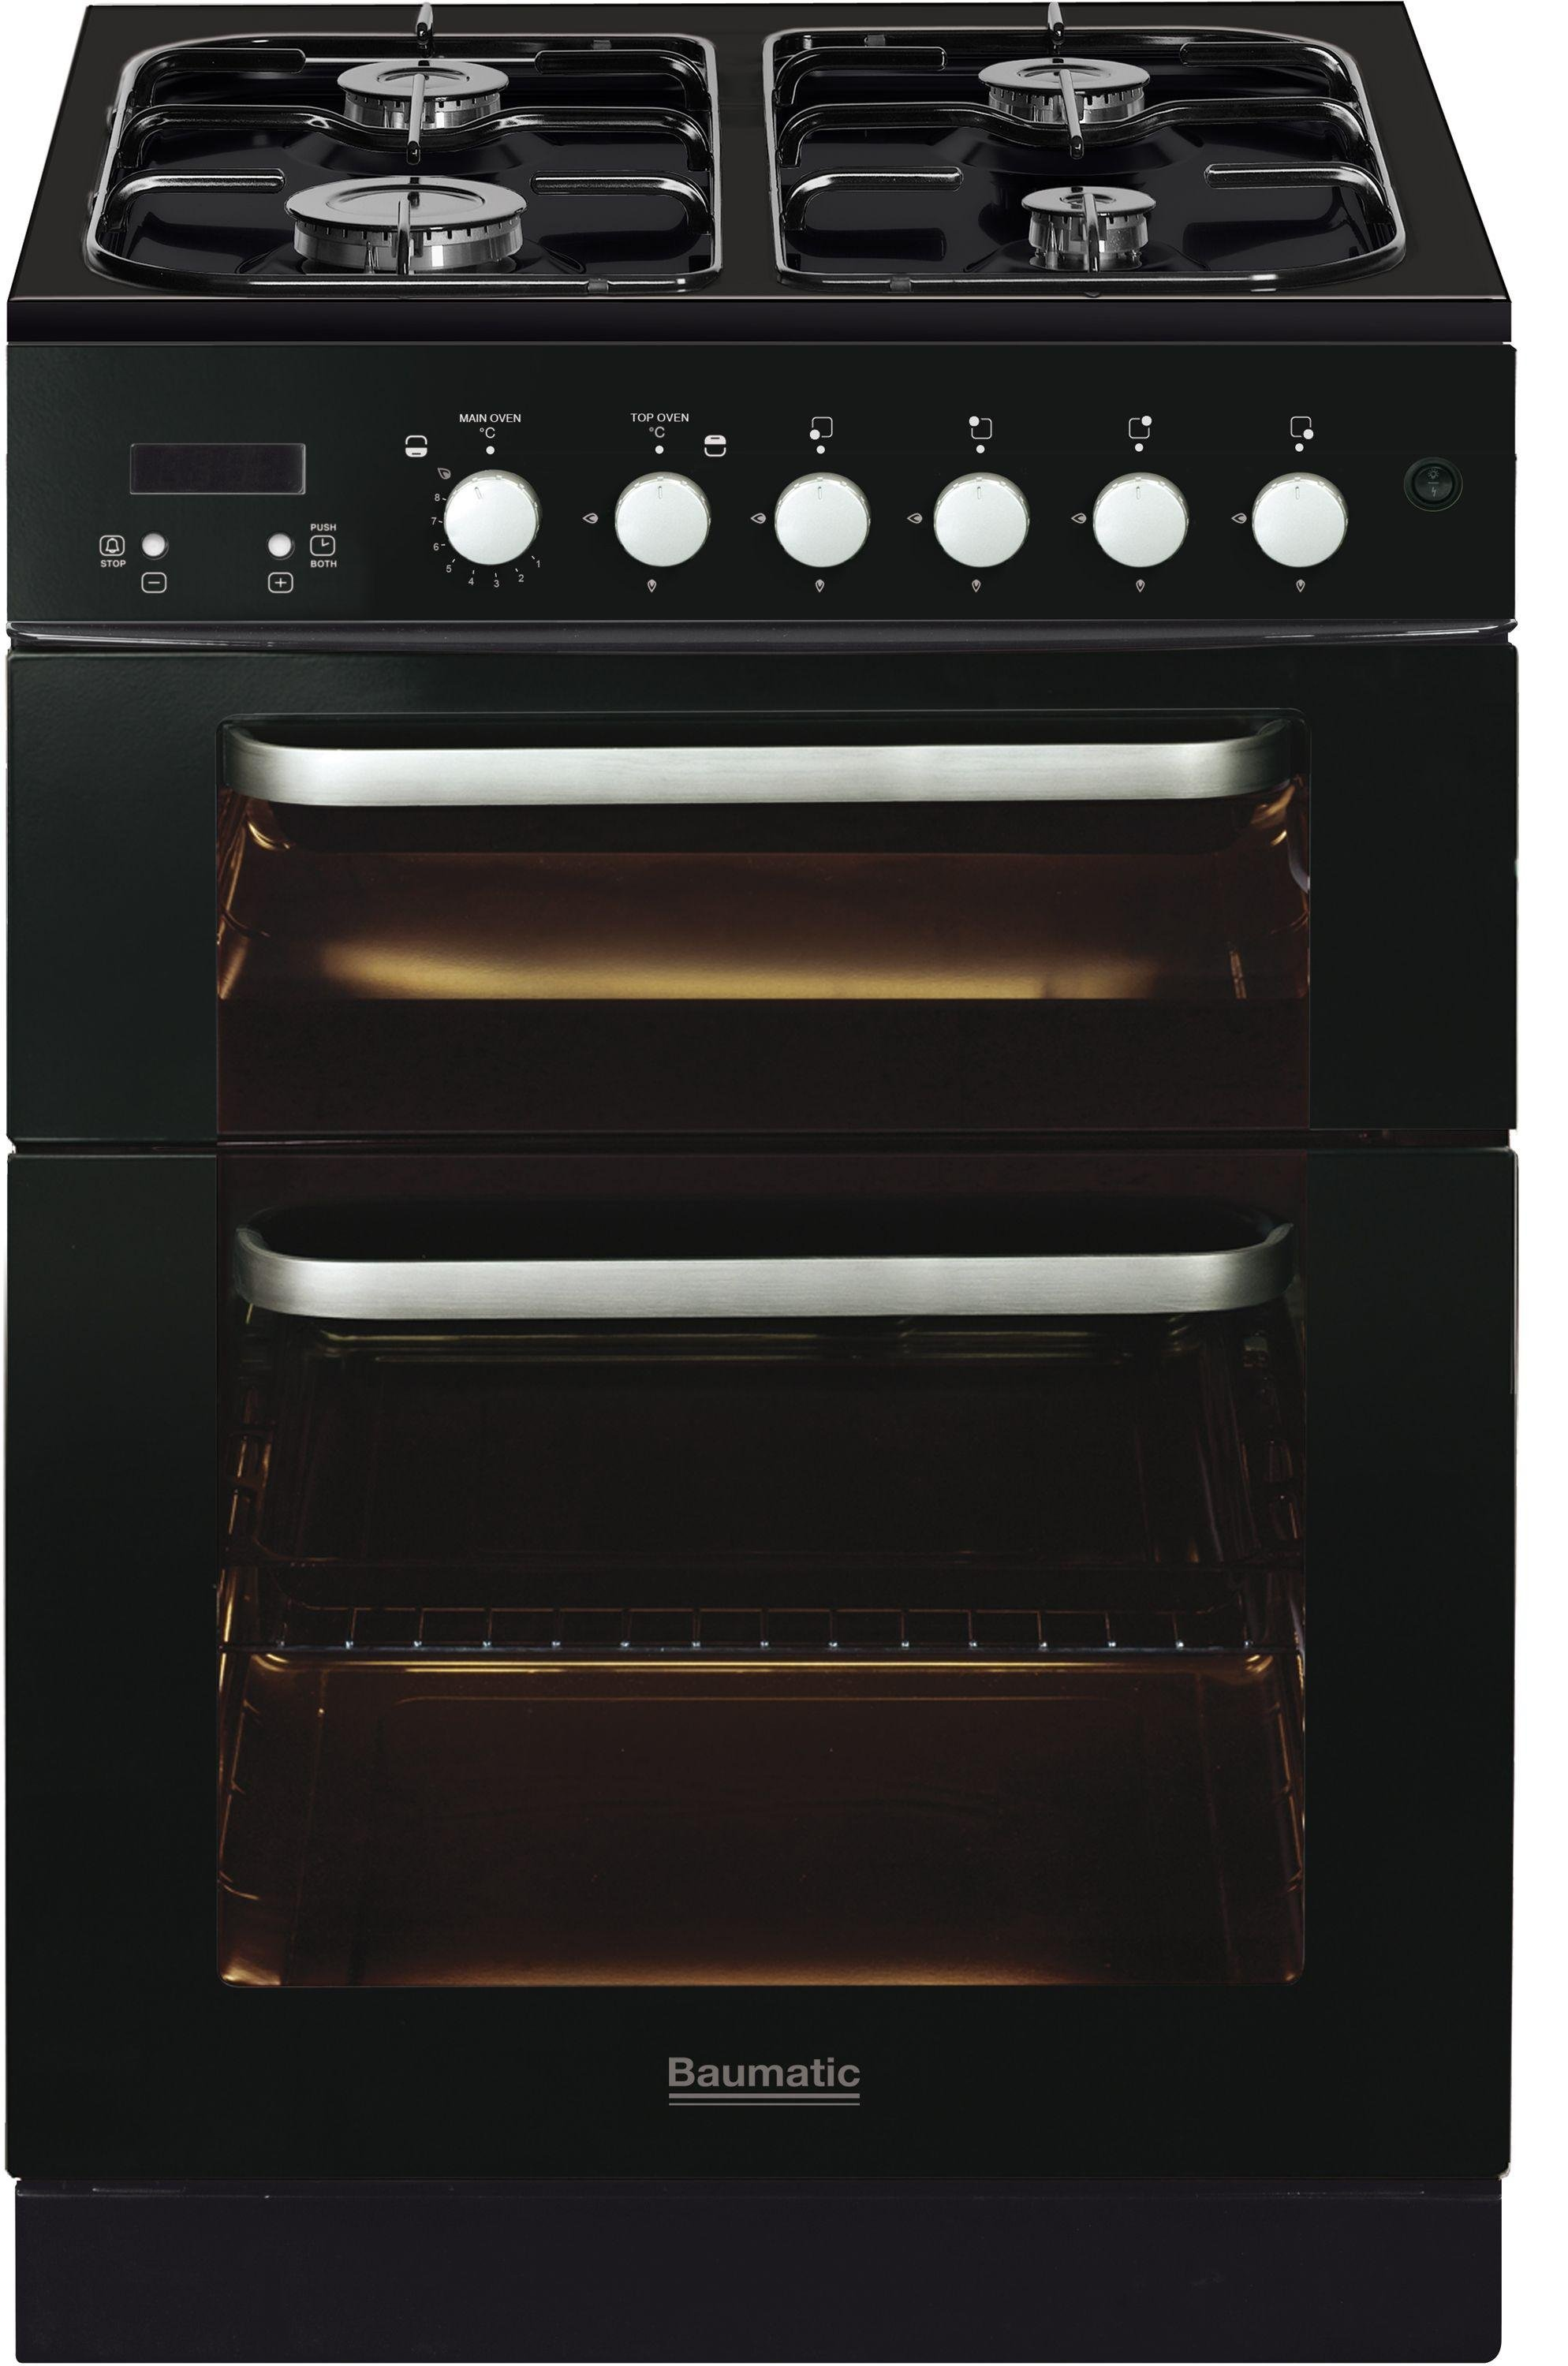 Baumatic BCG625BL 60cm Gas Twin Cooker - Black.